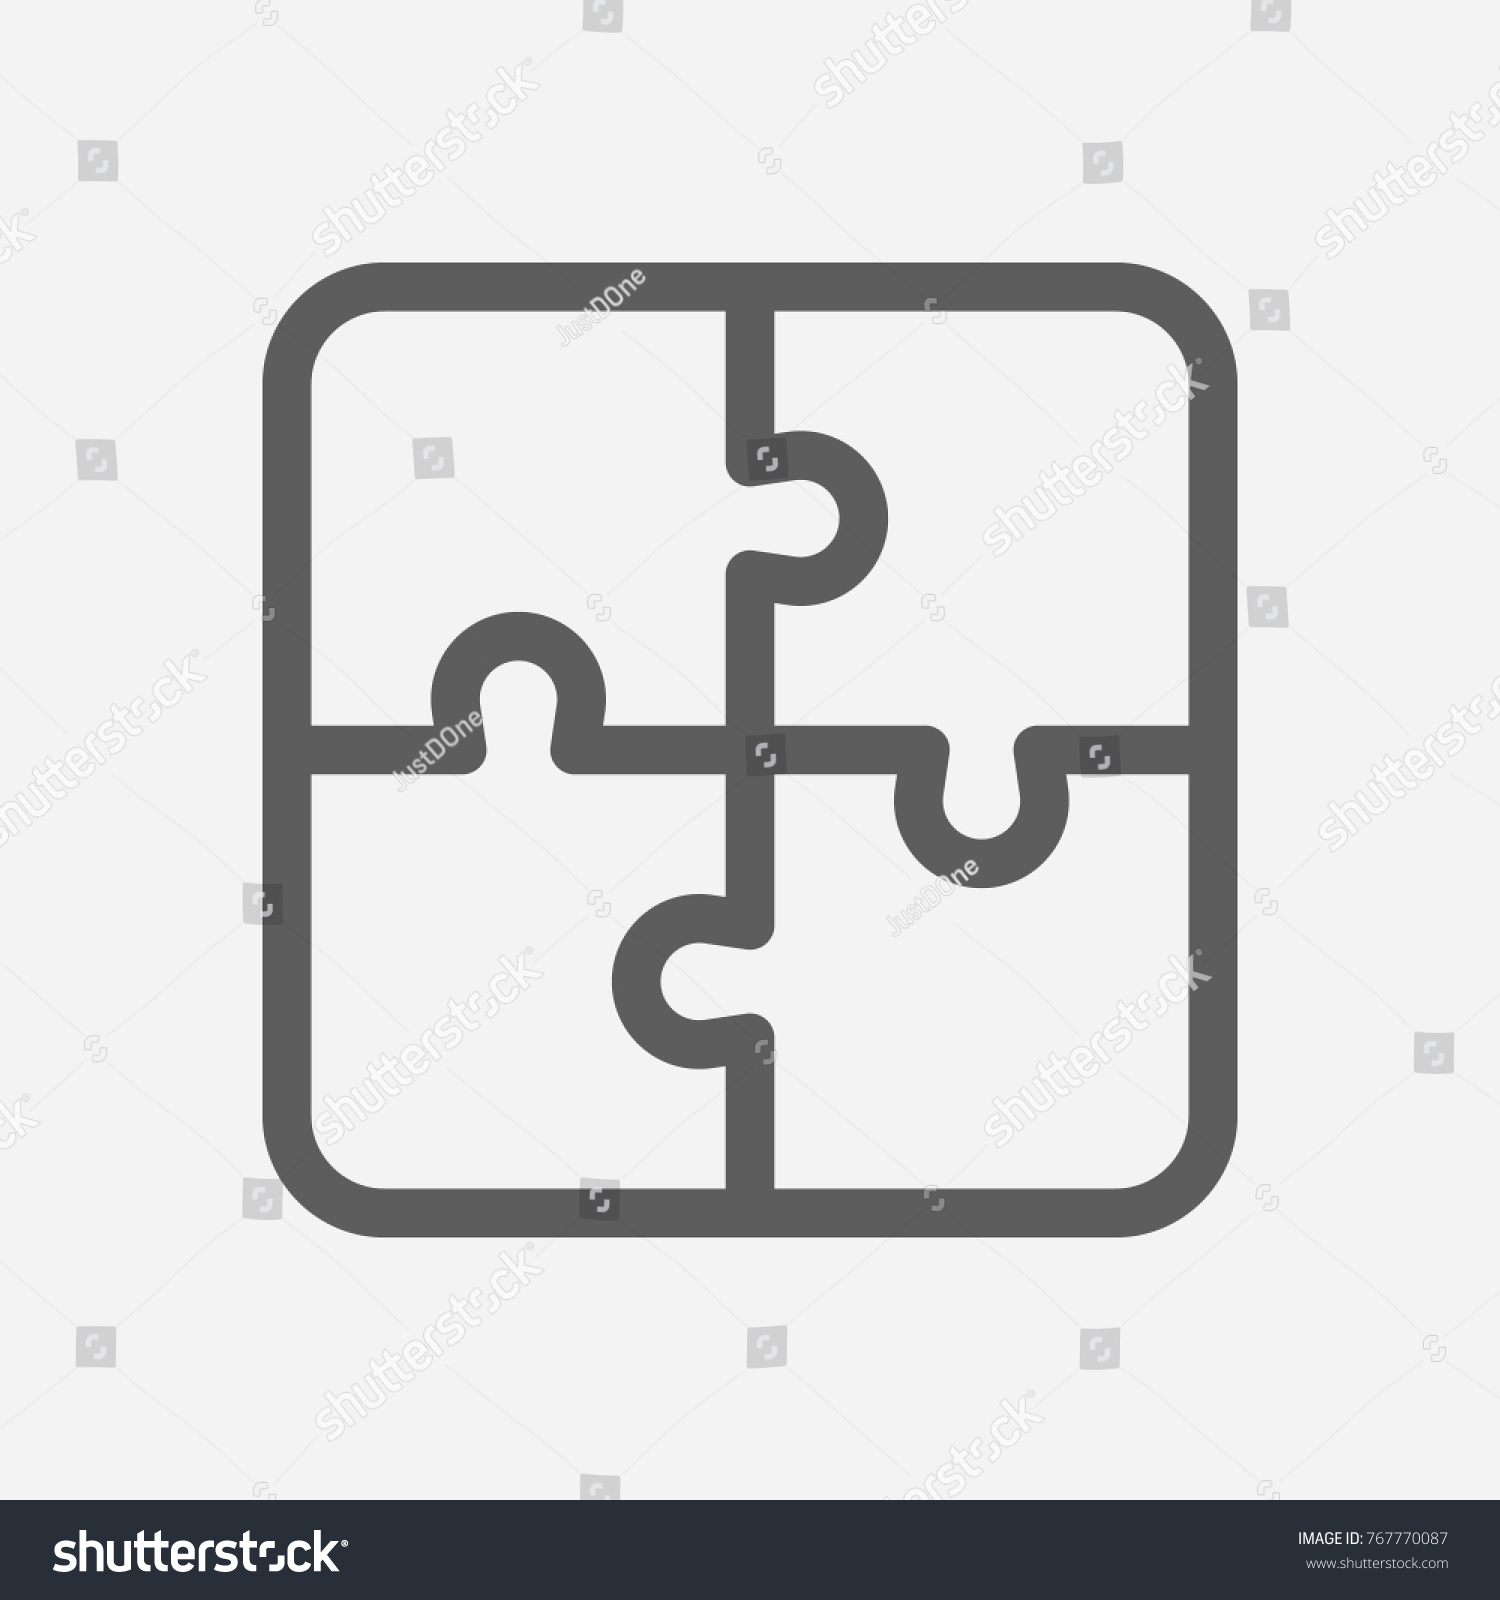 Core Values Integrity Icon Puzzle Line Stock Vector 767770087